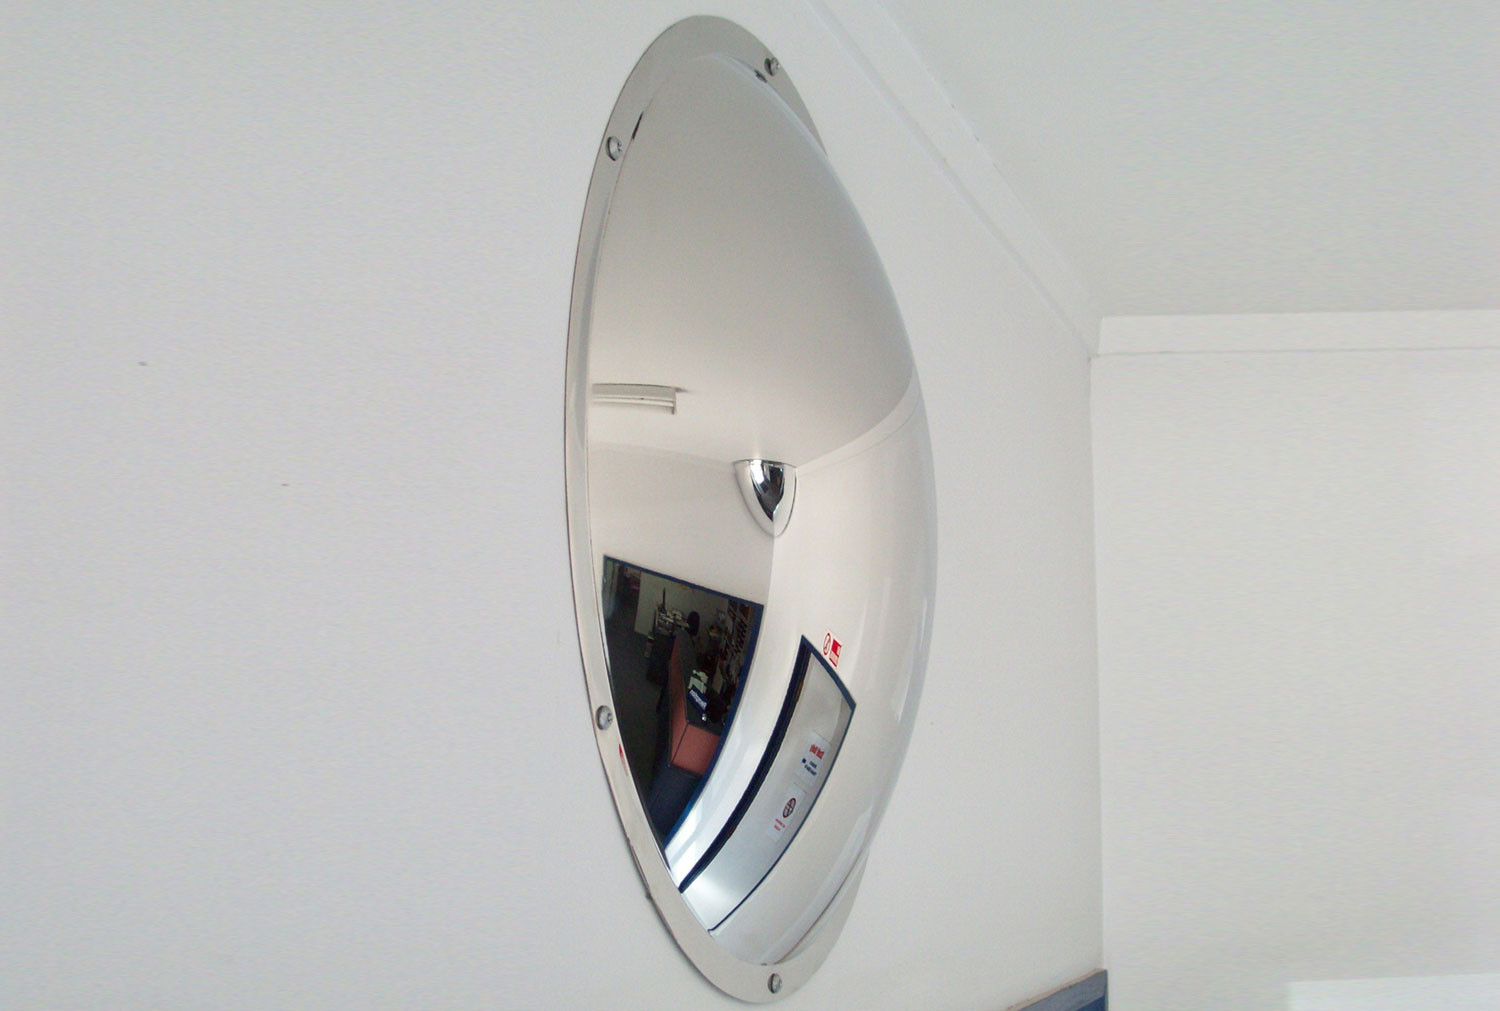 Anti Vandal Stainless Steel Wall Dome